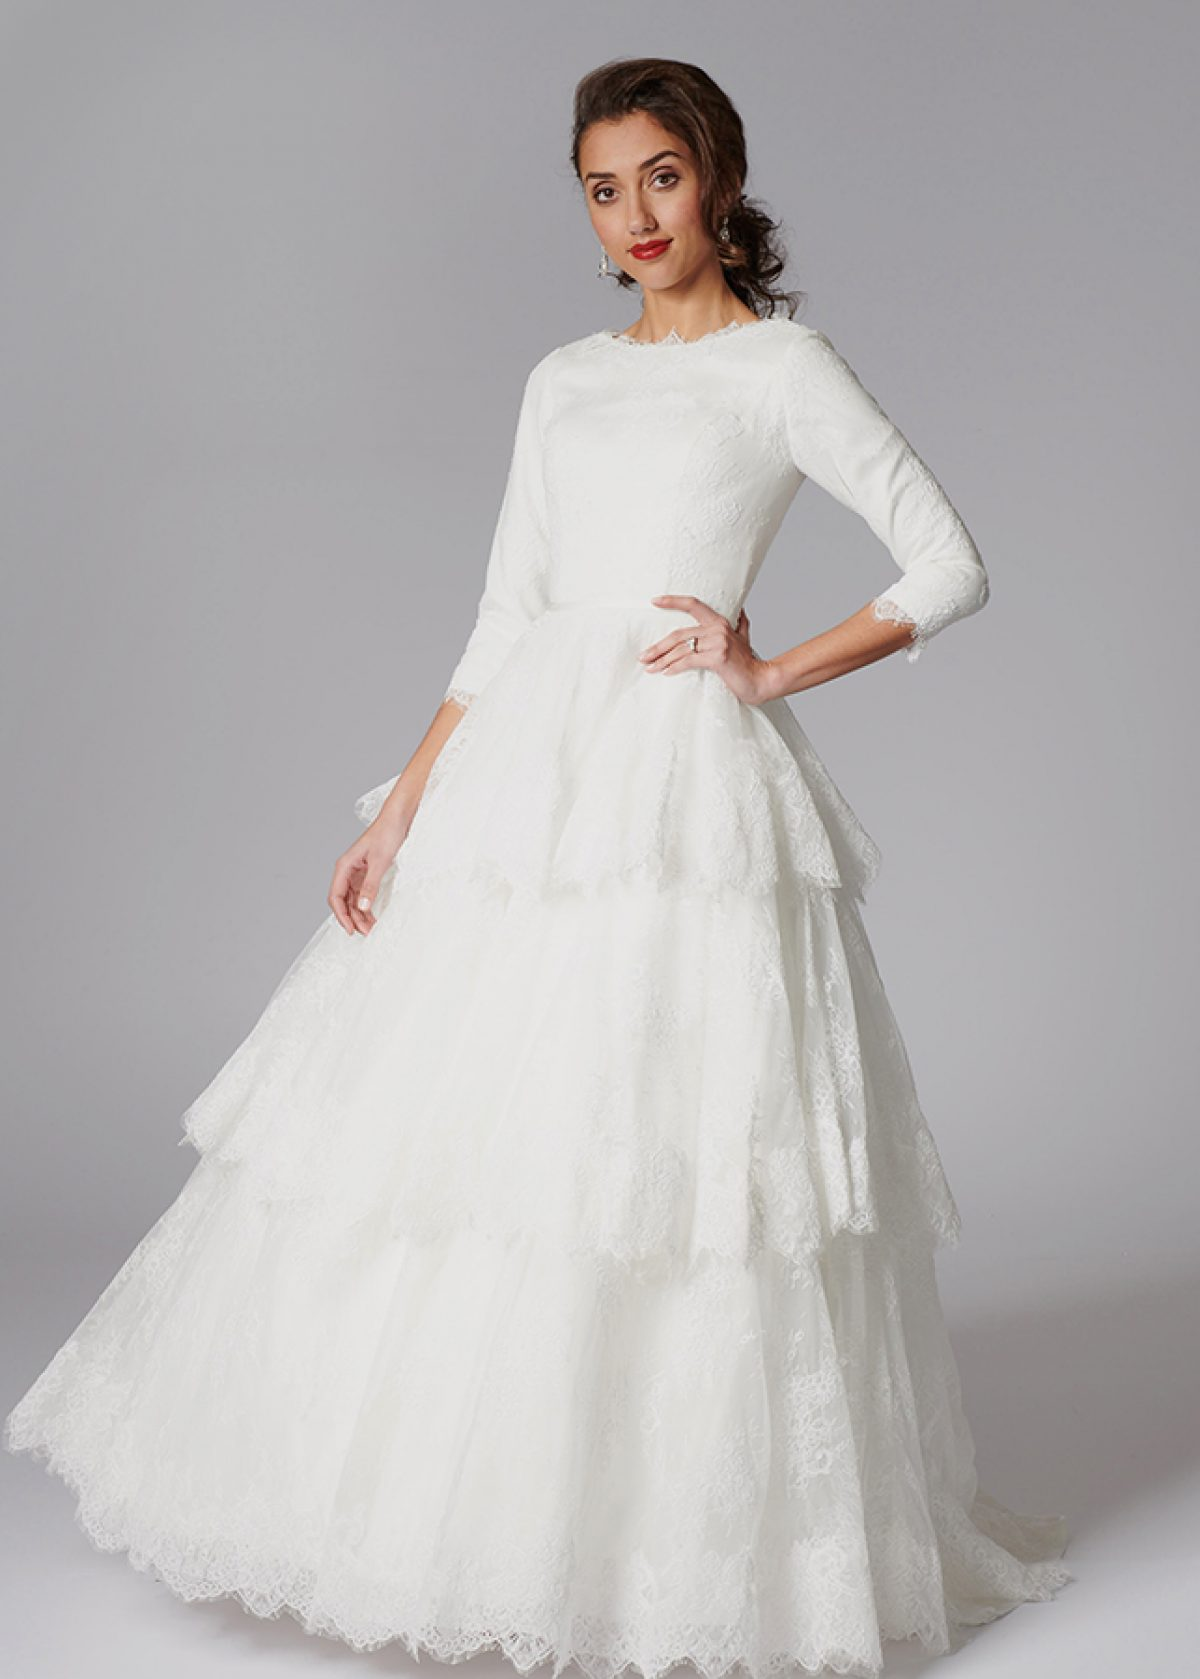 Conservative And Modest Ivory Lace Ballgown With 3 Tier Ruffle Layered Skirt